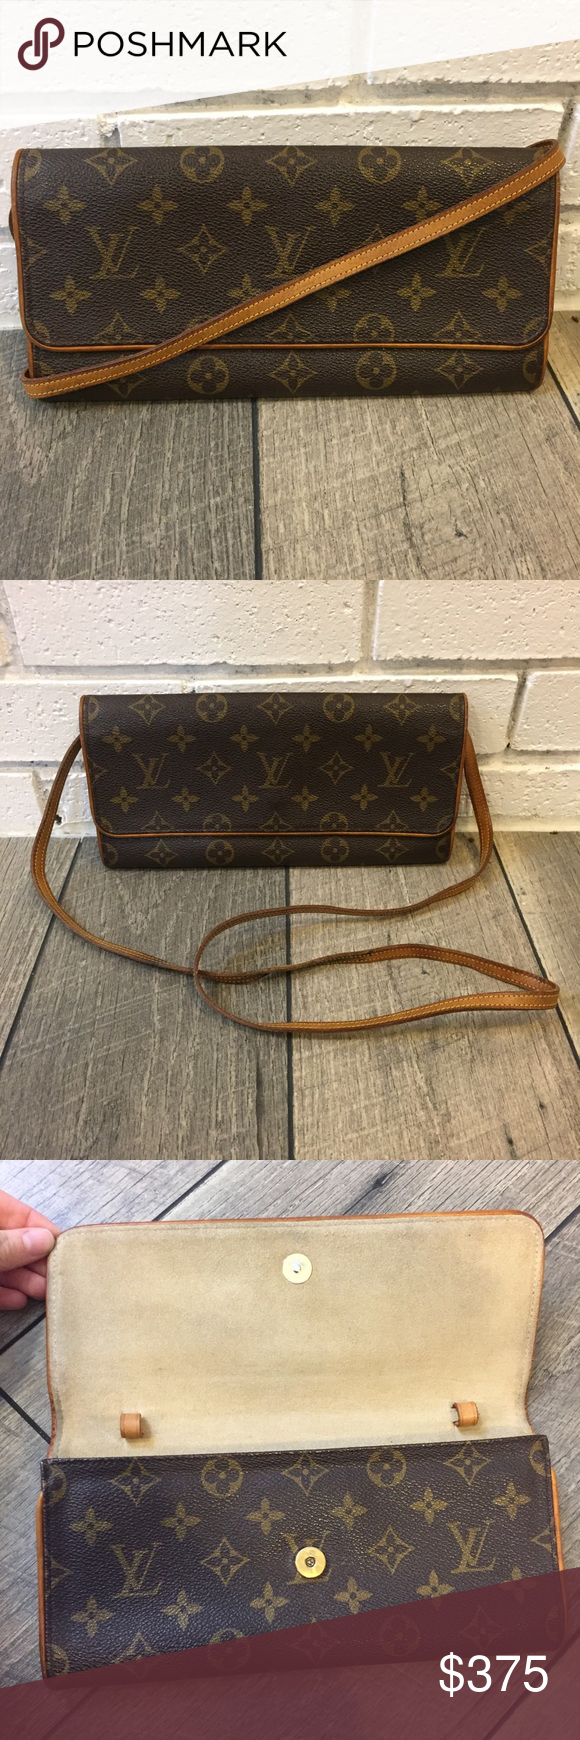 Authentic Louis Vuitton Twin Pochette GM The perfect crossbody! Just the right size to fit all the essentials!     Bag is in great condition overall. Monogram canvas is in excellent condition with no flaws. Vachetta trim has a nice patina and no flaws. Interior has some very light marks and a slight vintage smell. Strap has some dark marks on it but is sturdy. Feel free to ask questions or make a reasonable offer! //No trades. Offers welcome, please use offer button.// Louis Vuitton Bags…